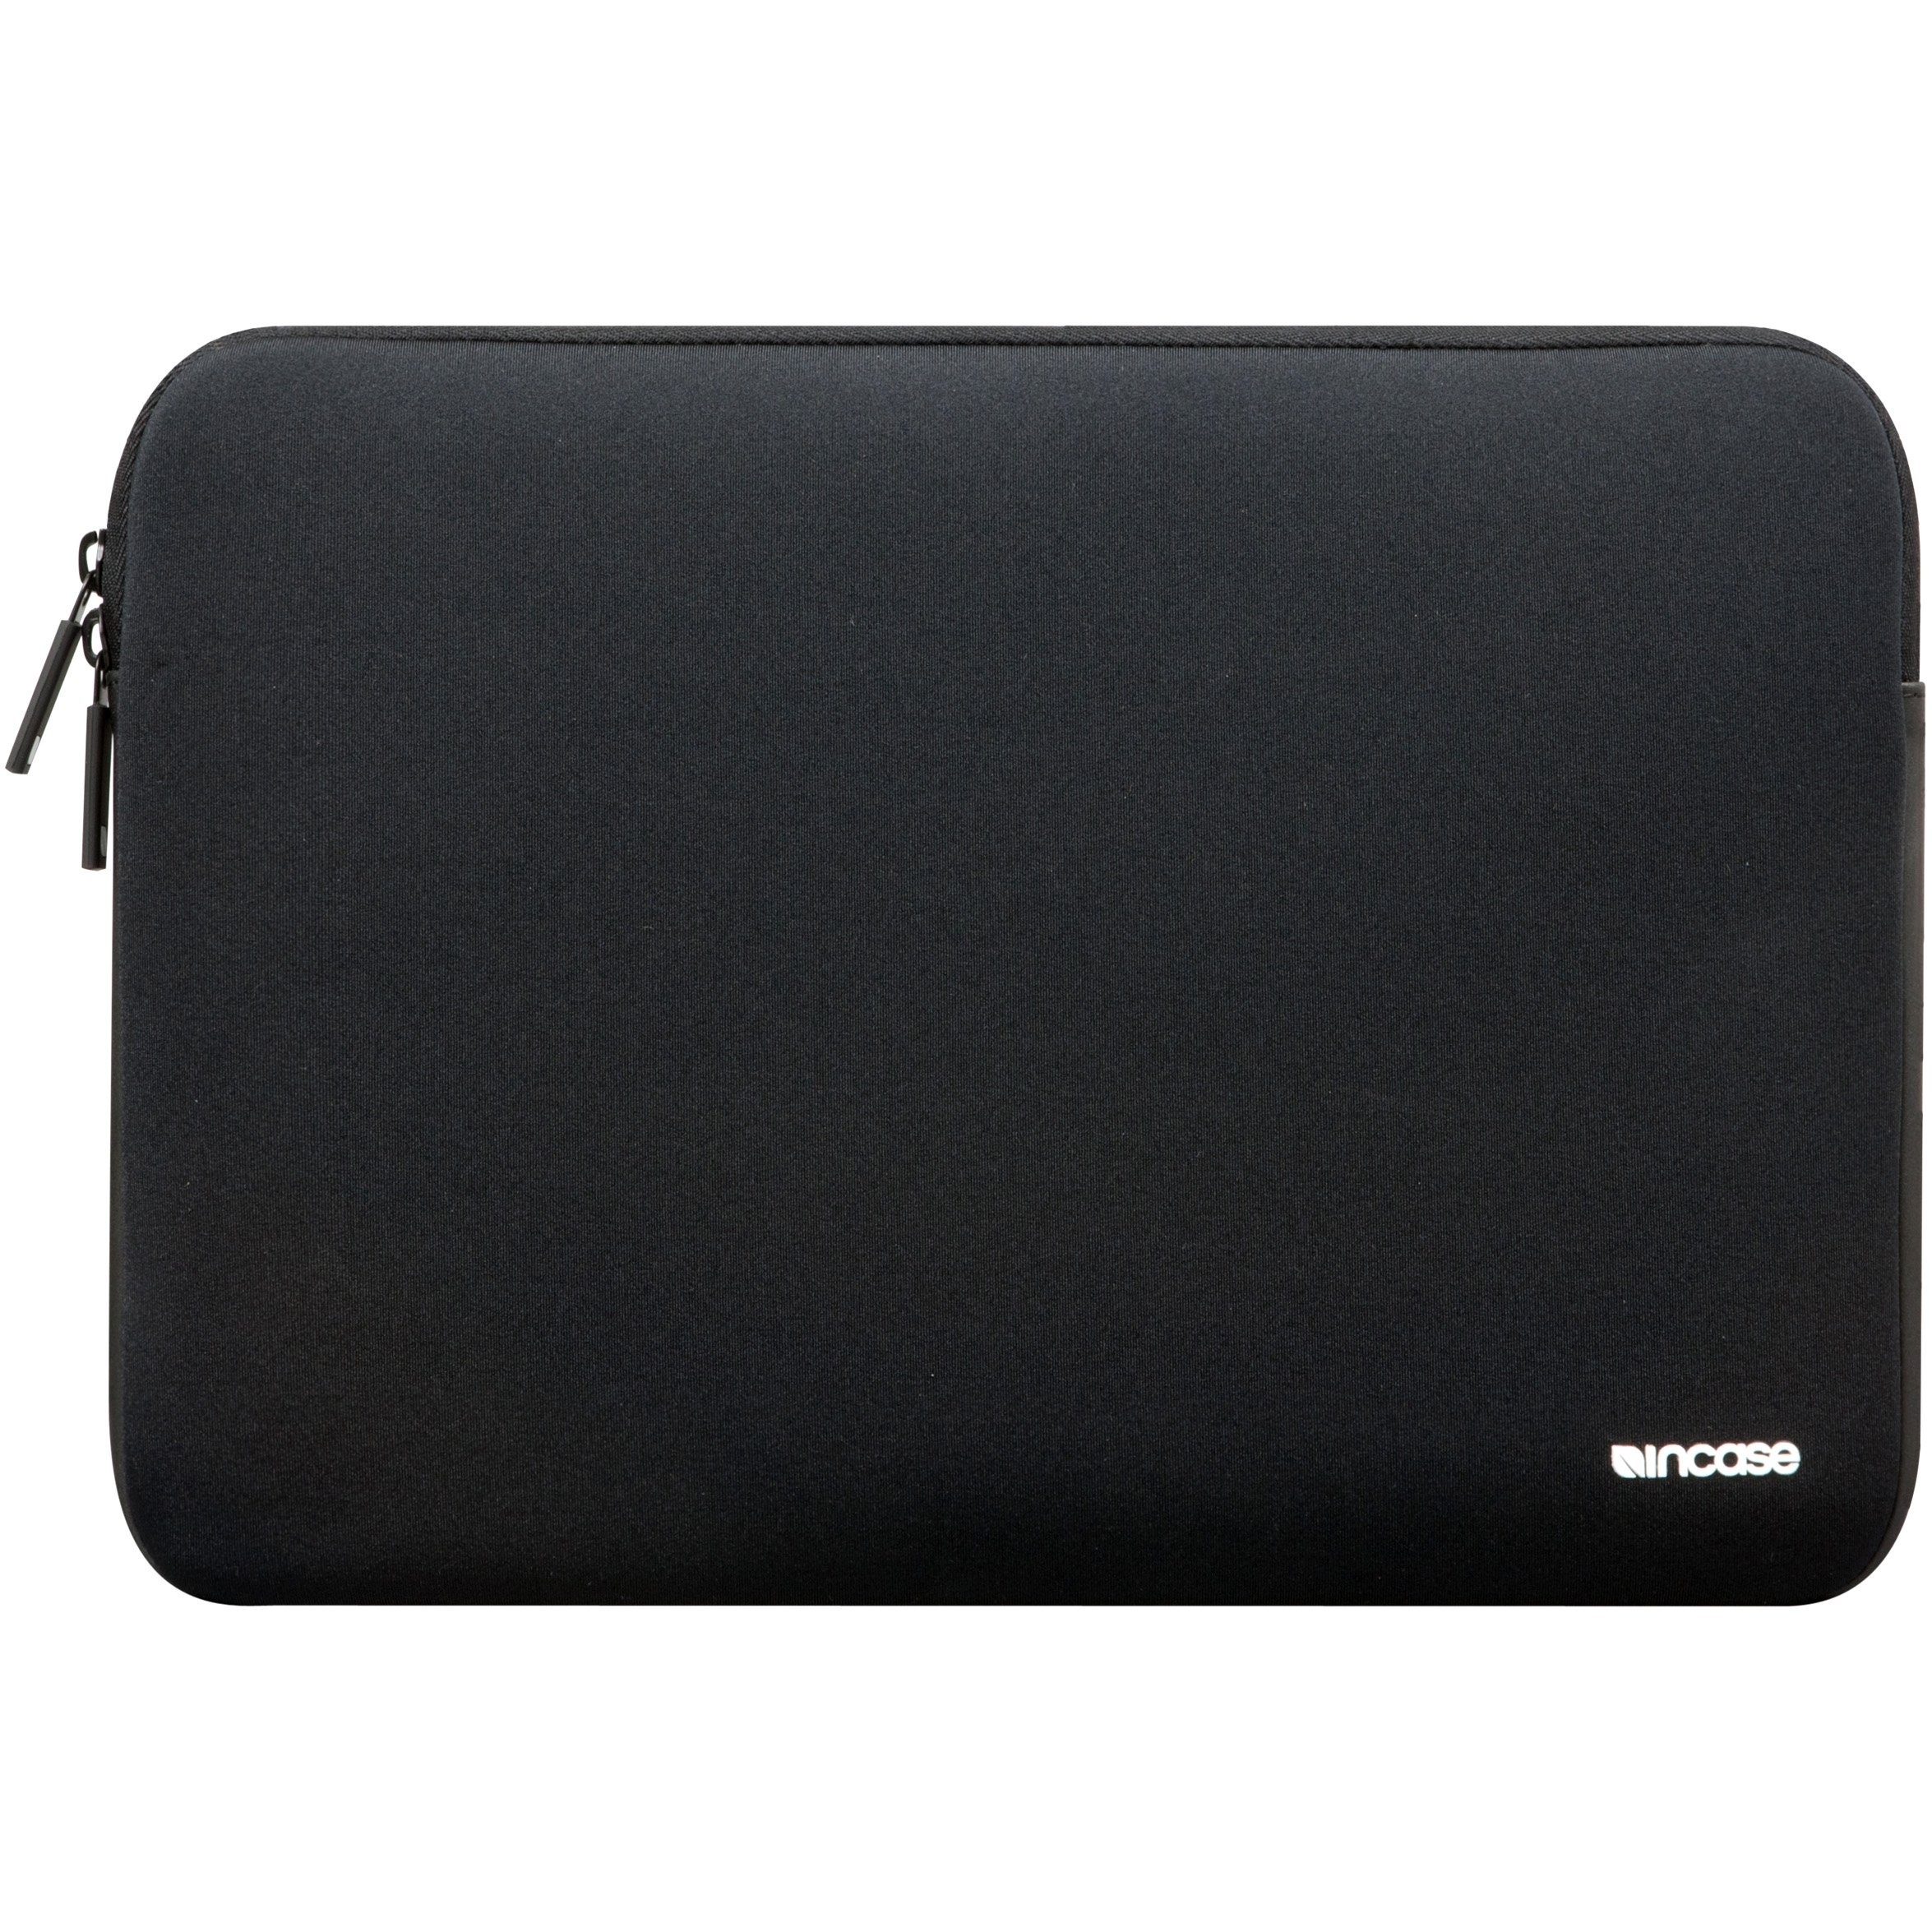 Incase Classic Sleeve for 15-Inch MacBook (CL60528) by Incase Designs (Image #1)